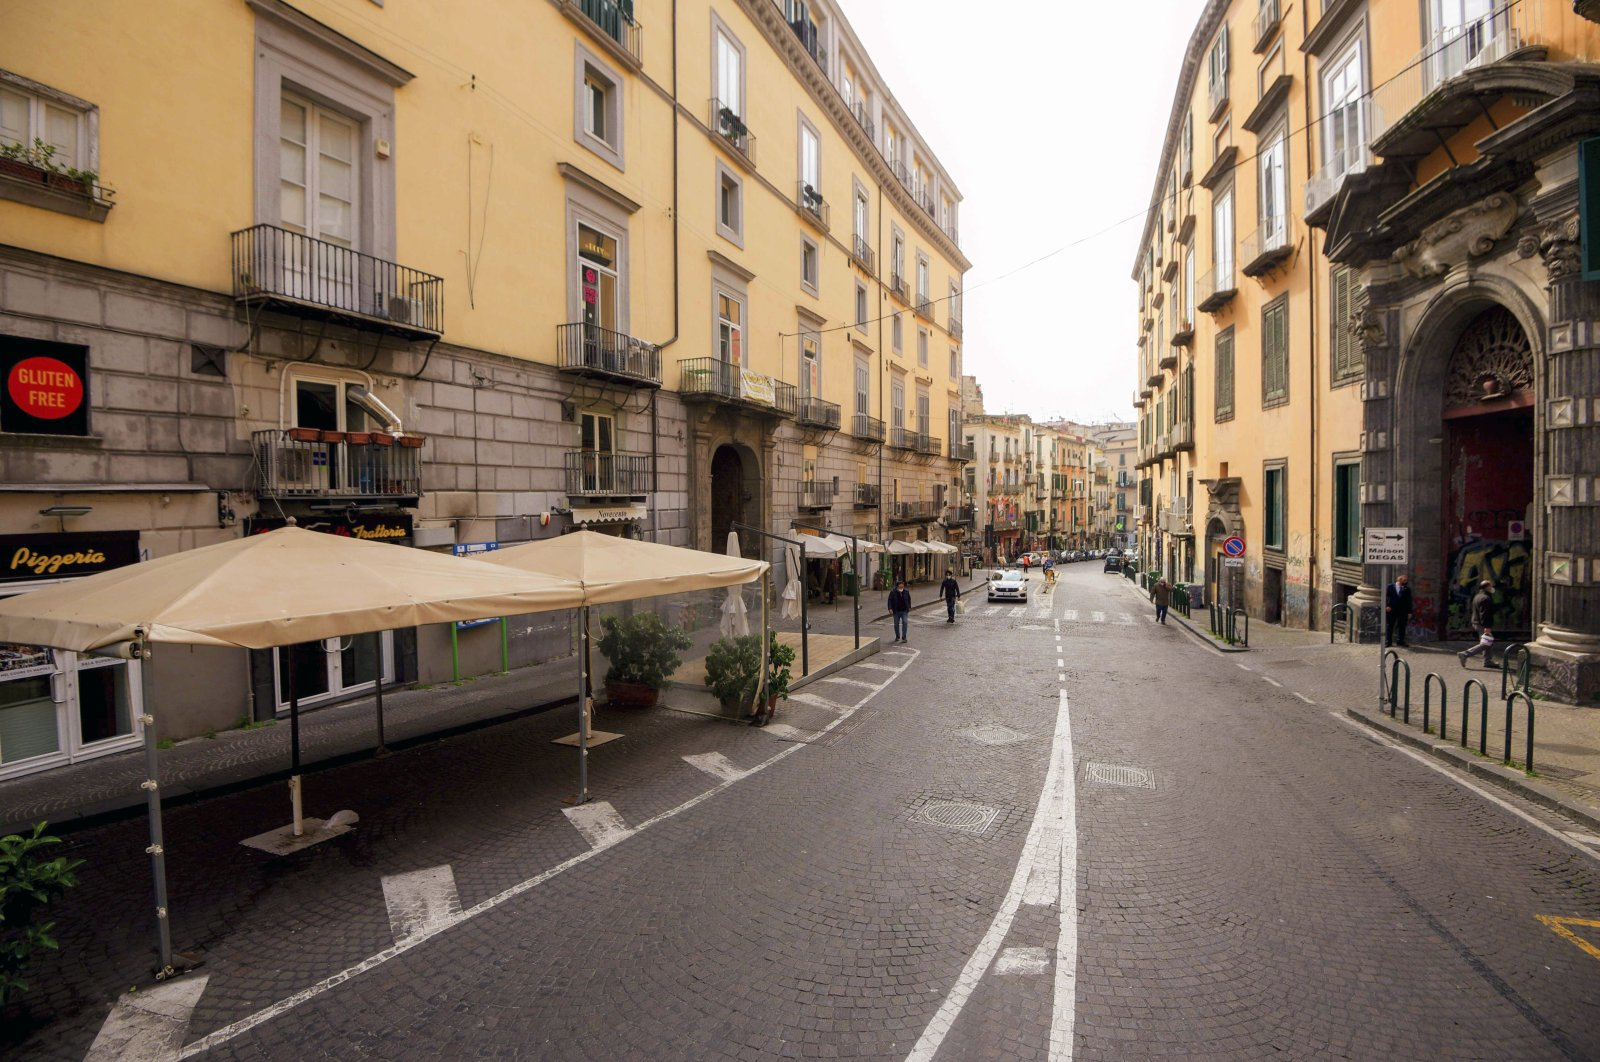 A view of an almost deserted Piazza del Gesu', in downtown Naples, Italy, Monday, March 8, 2021 following restriction measures to curb the spread of COVID-19. (LaPresse via AP)